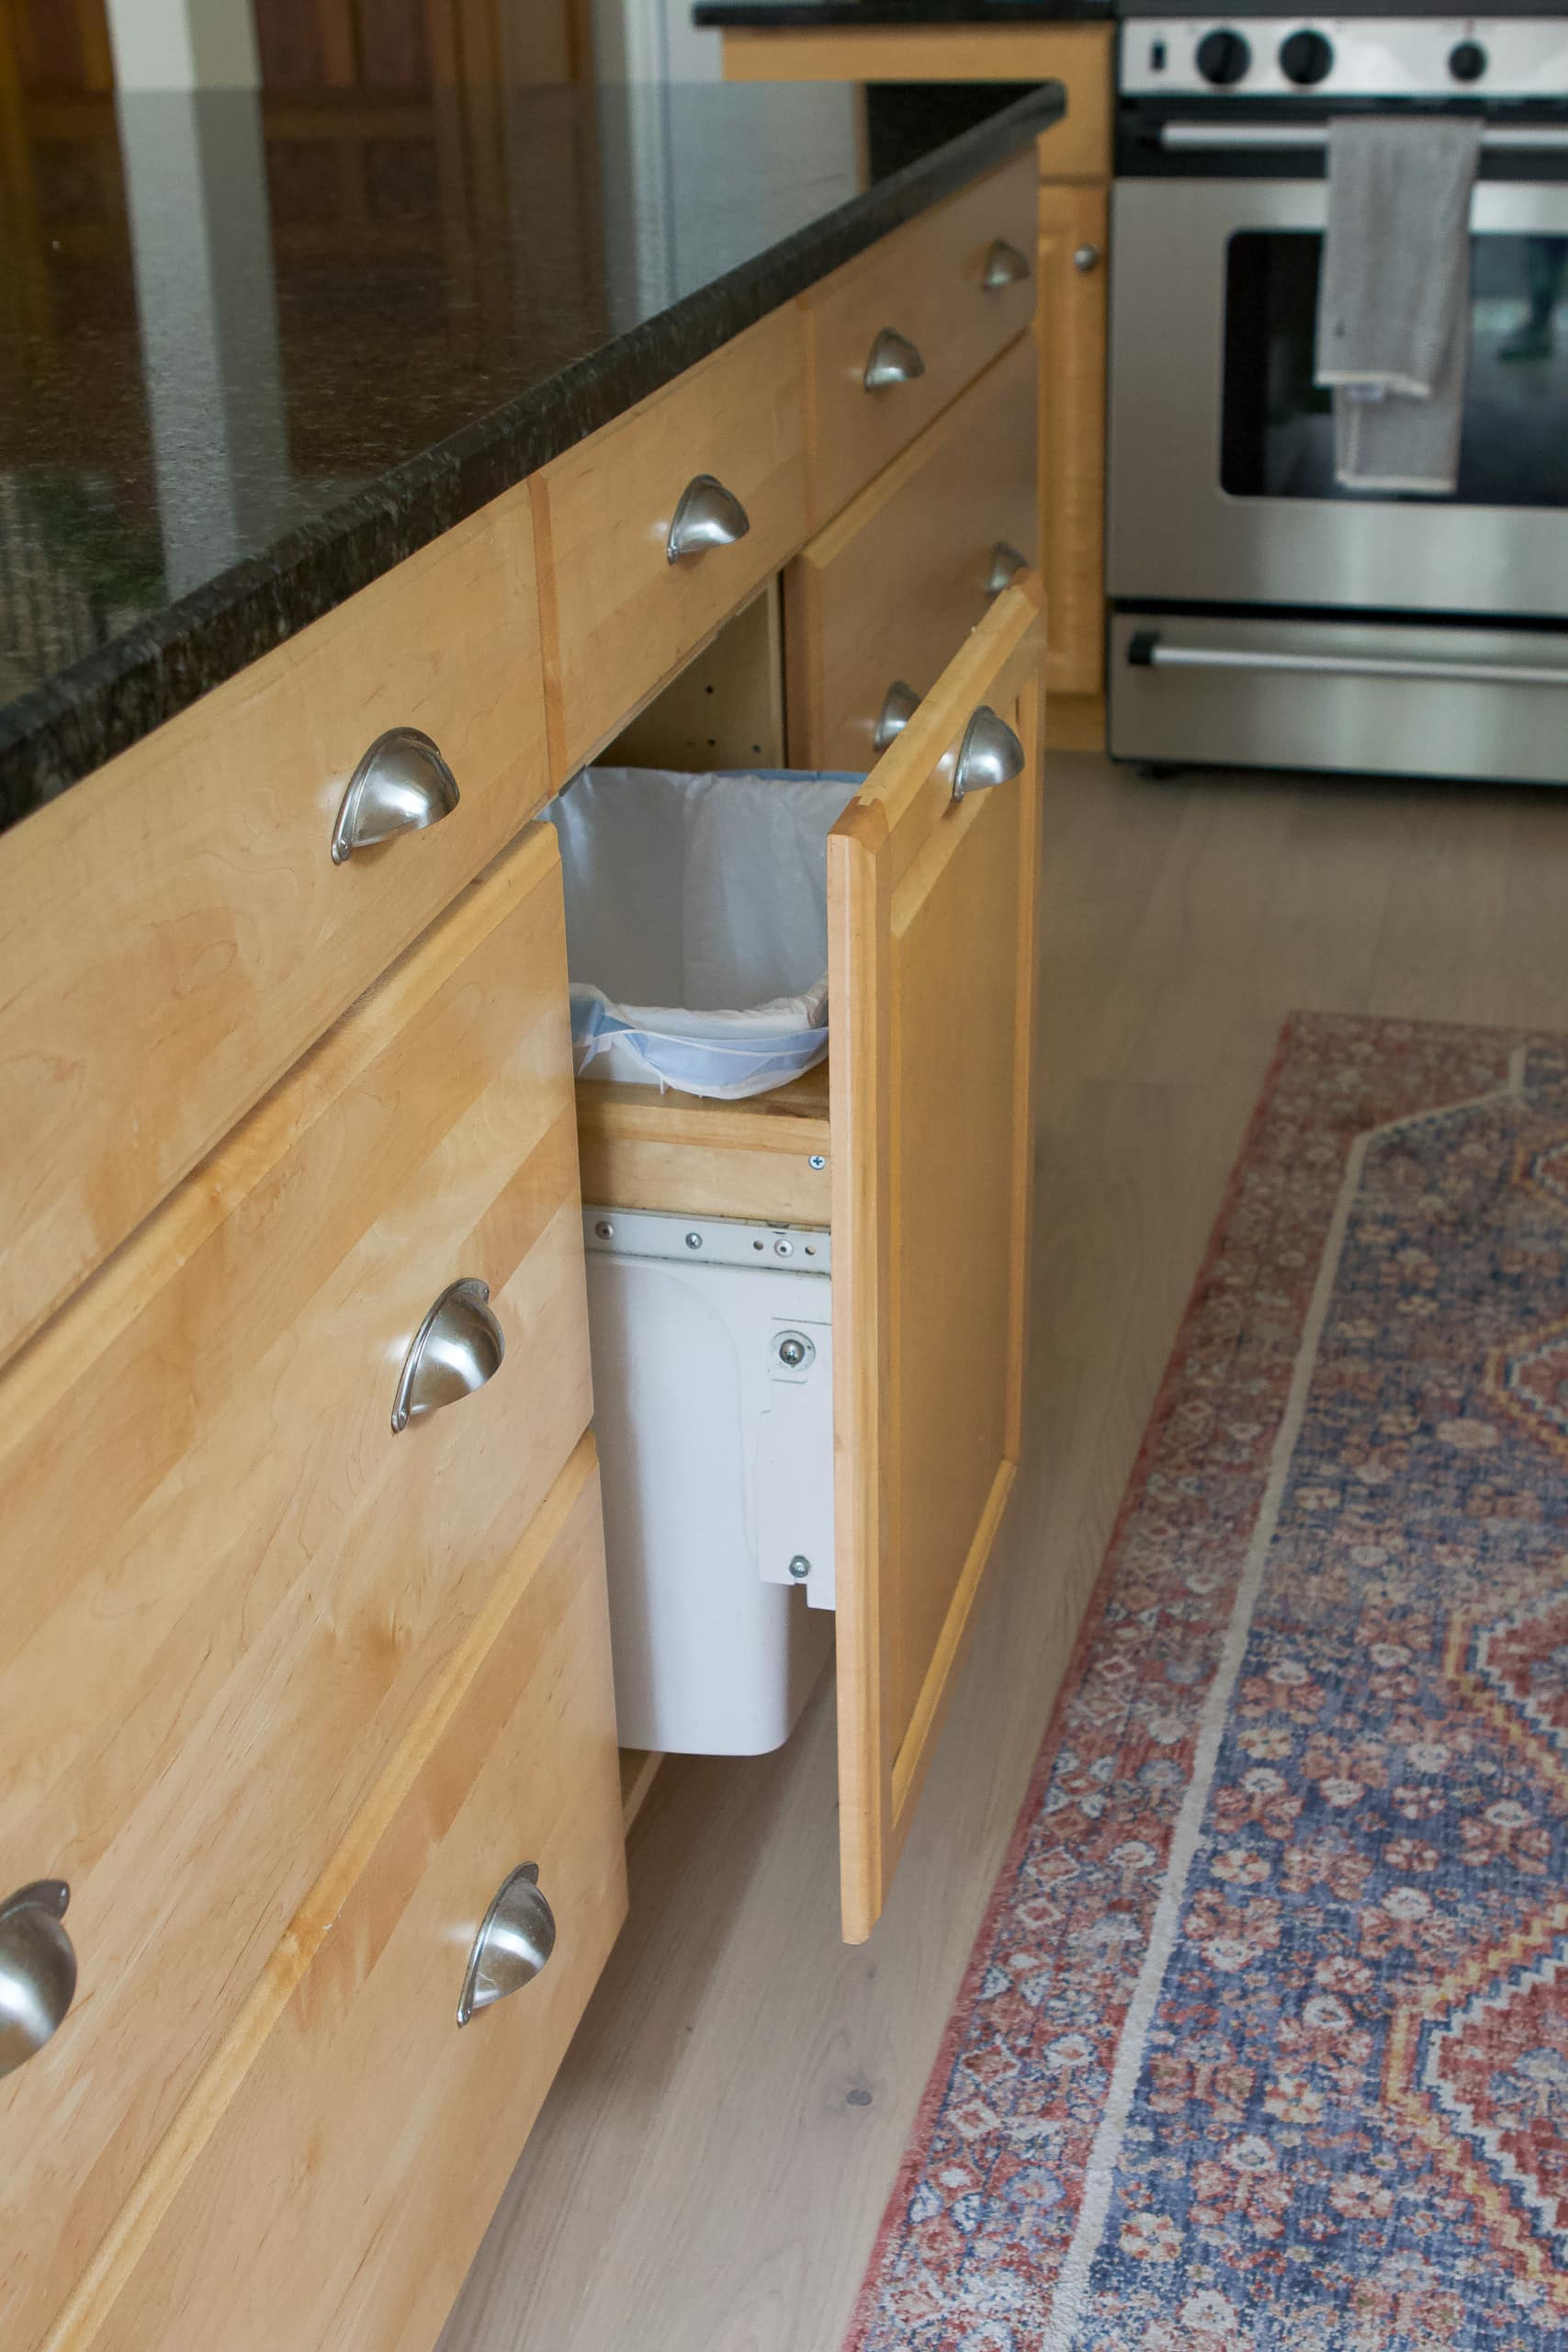 Our ghost garbage can